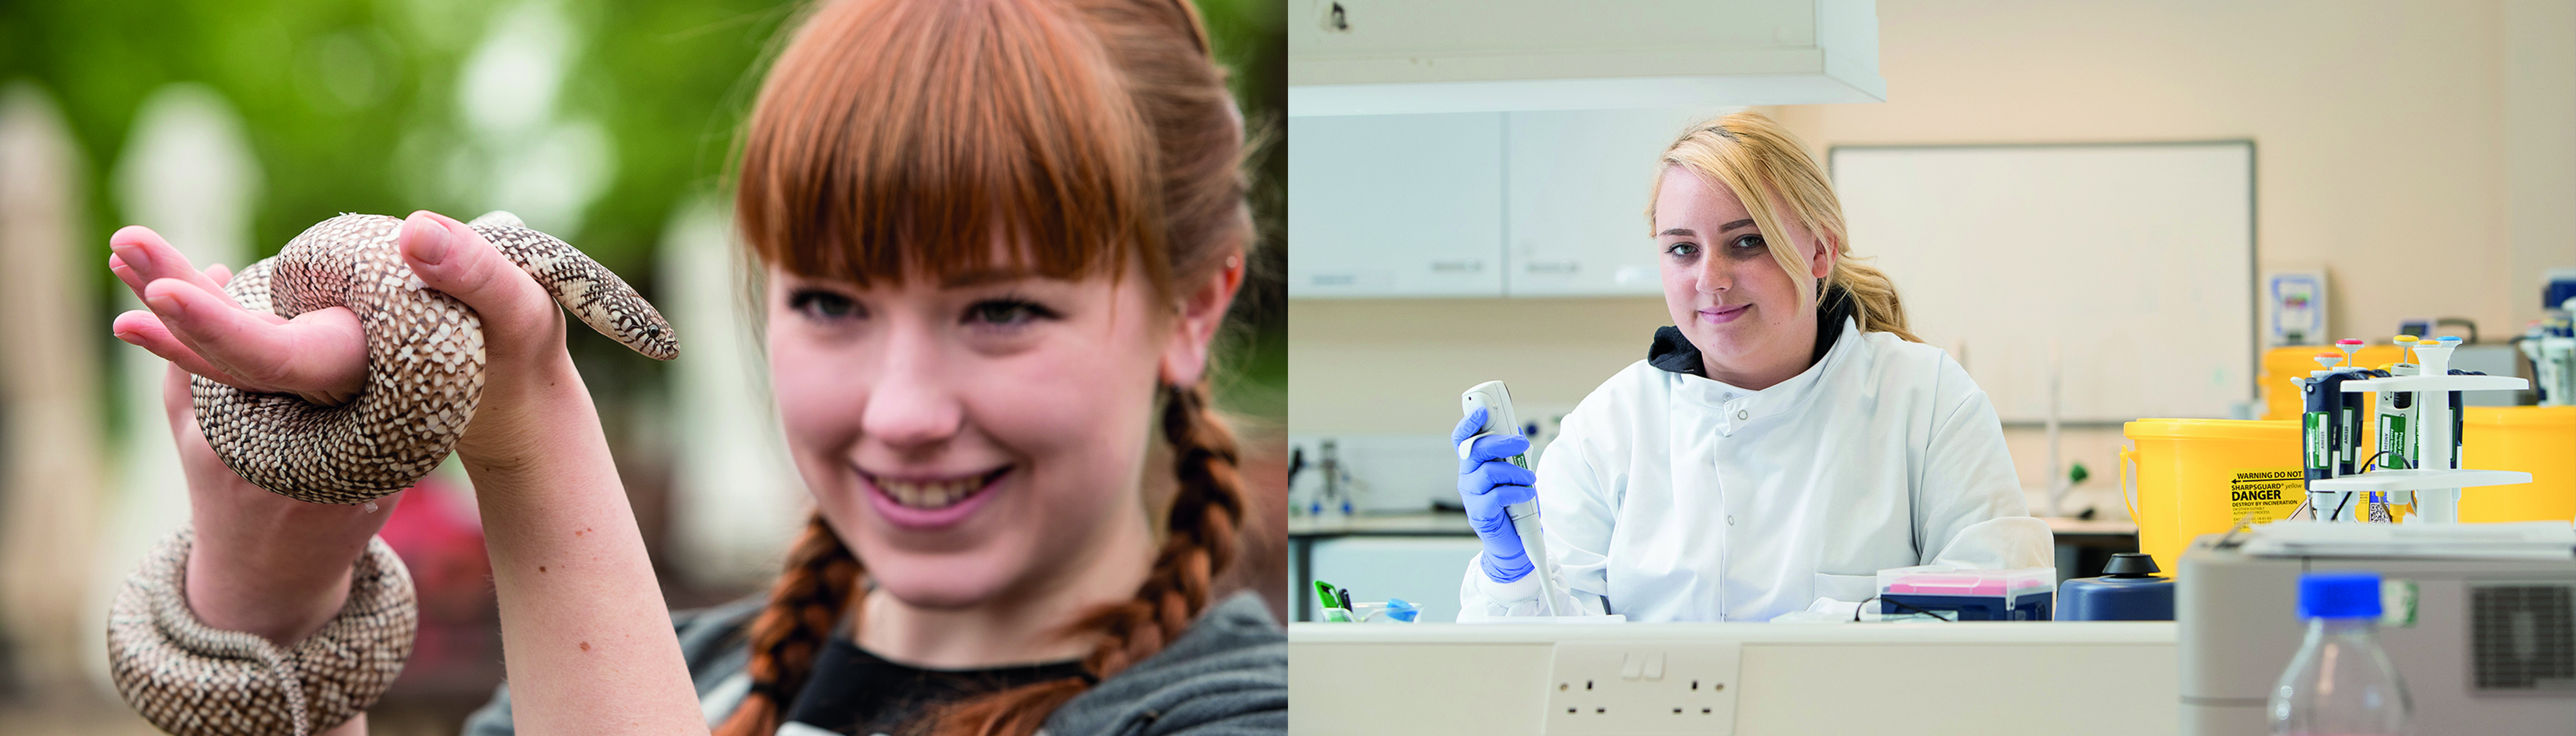 Images of students on work based learning - one of a student holding a snake, the other of a student in a lab